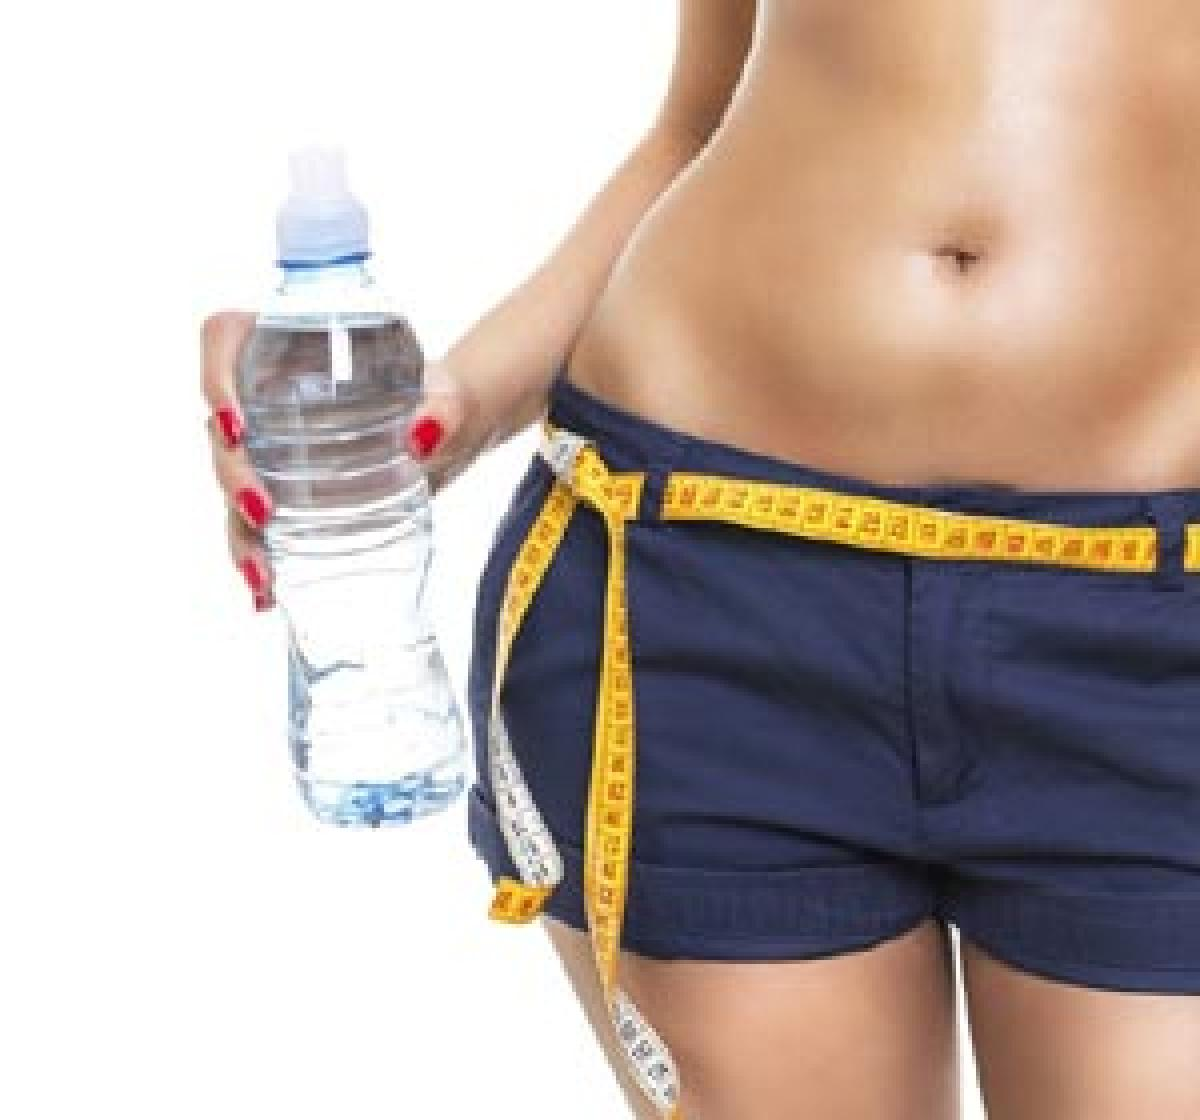 Water might be the new secret to weight loss